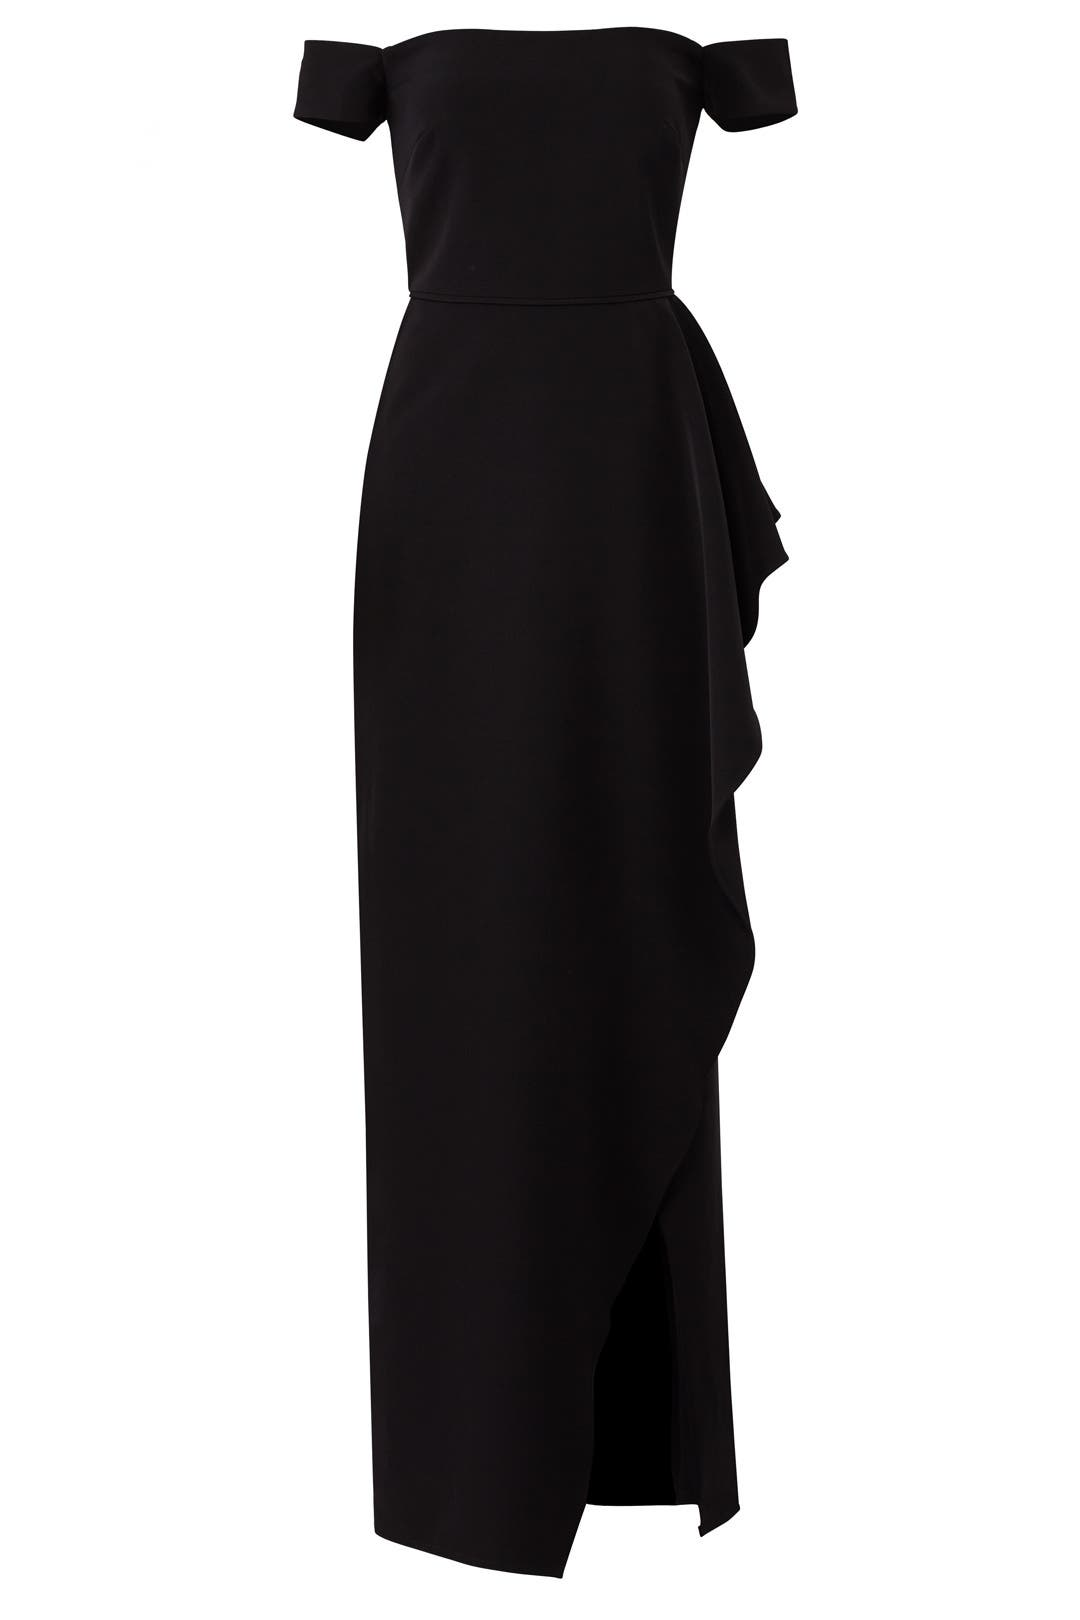 Off Shoulder Split Gown by JS Collection for $50 - $70 | Rent the Runway